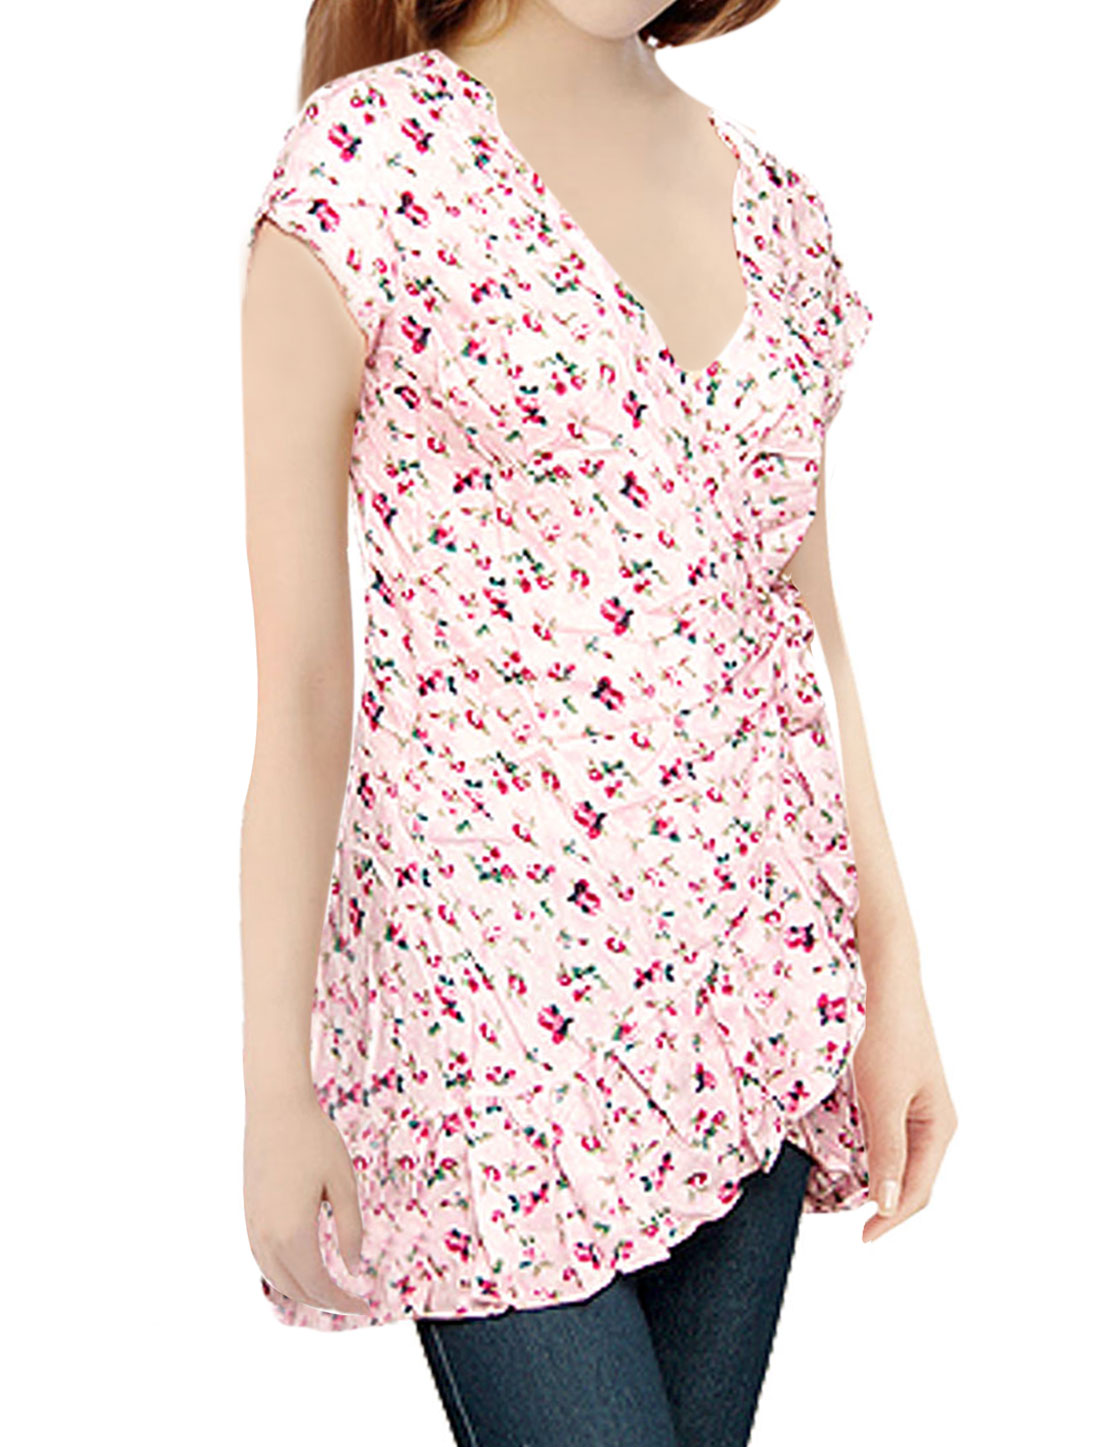 Floral Self Tie Waist Ruffled Hem Shirt for Ladies